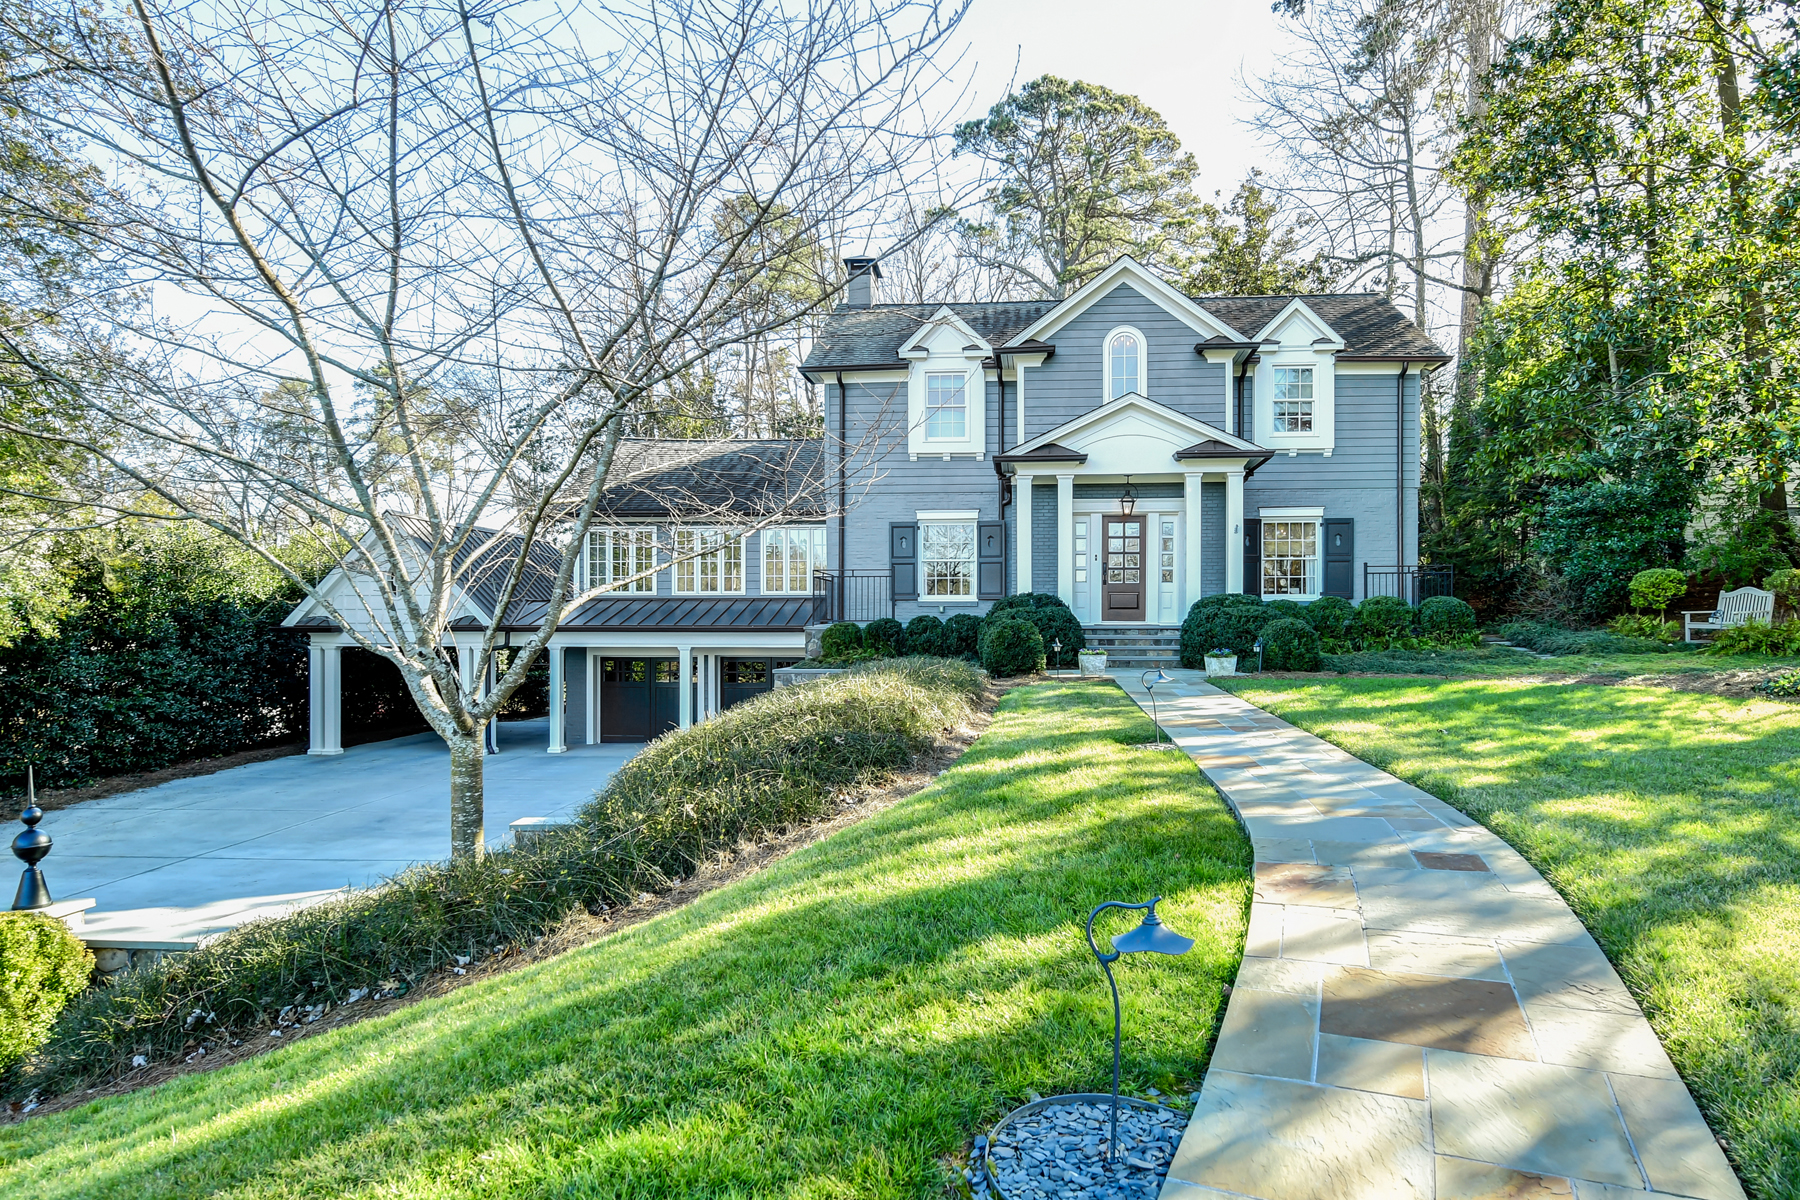 Single Family Home for Sale at Exceptional Style and Sophistication in this Historic Brookhaven Home 19 Brookhaven Drive NE Atlanta, Georgia 30319 United States